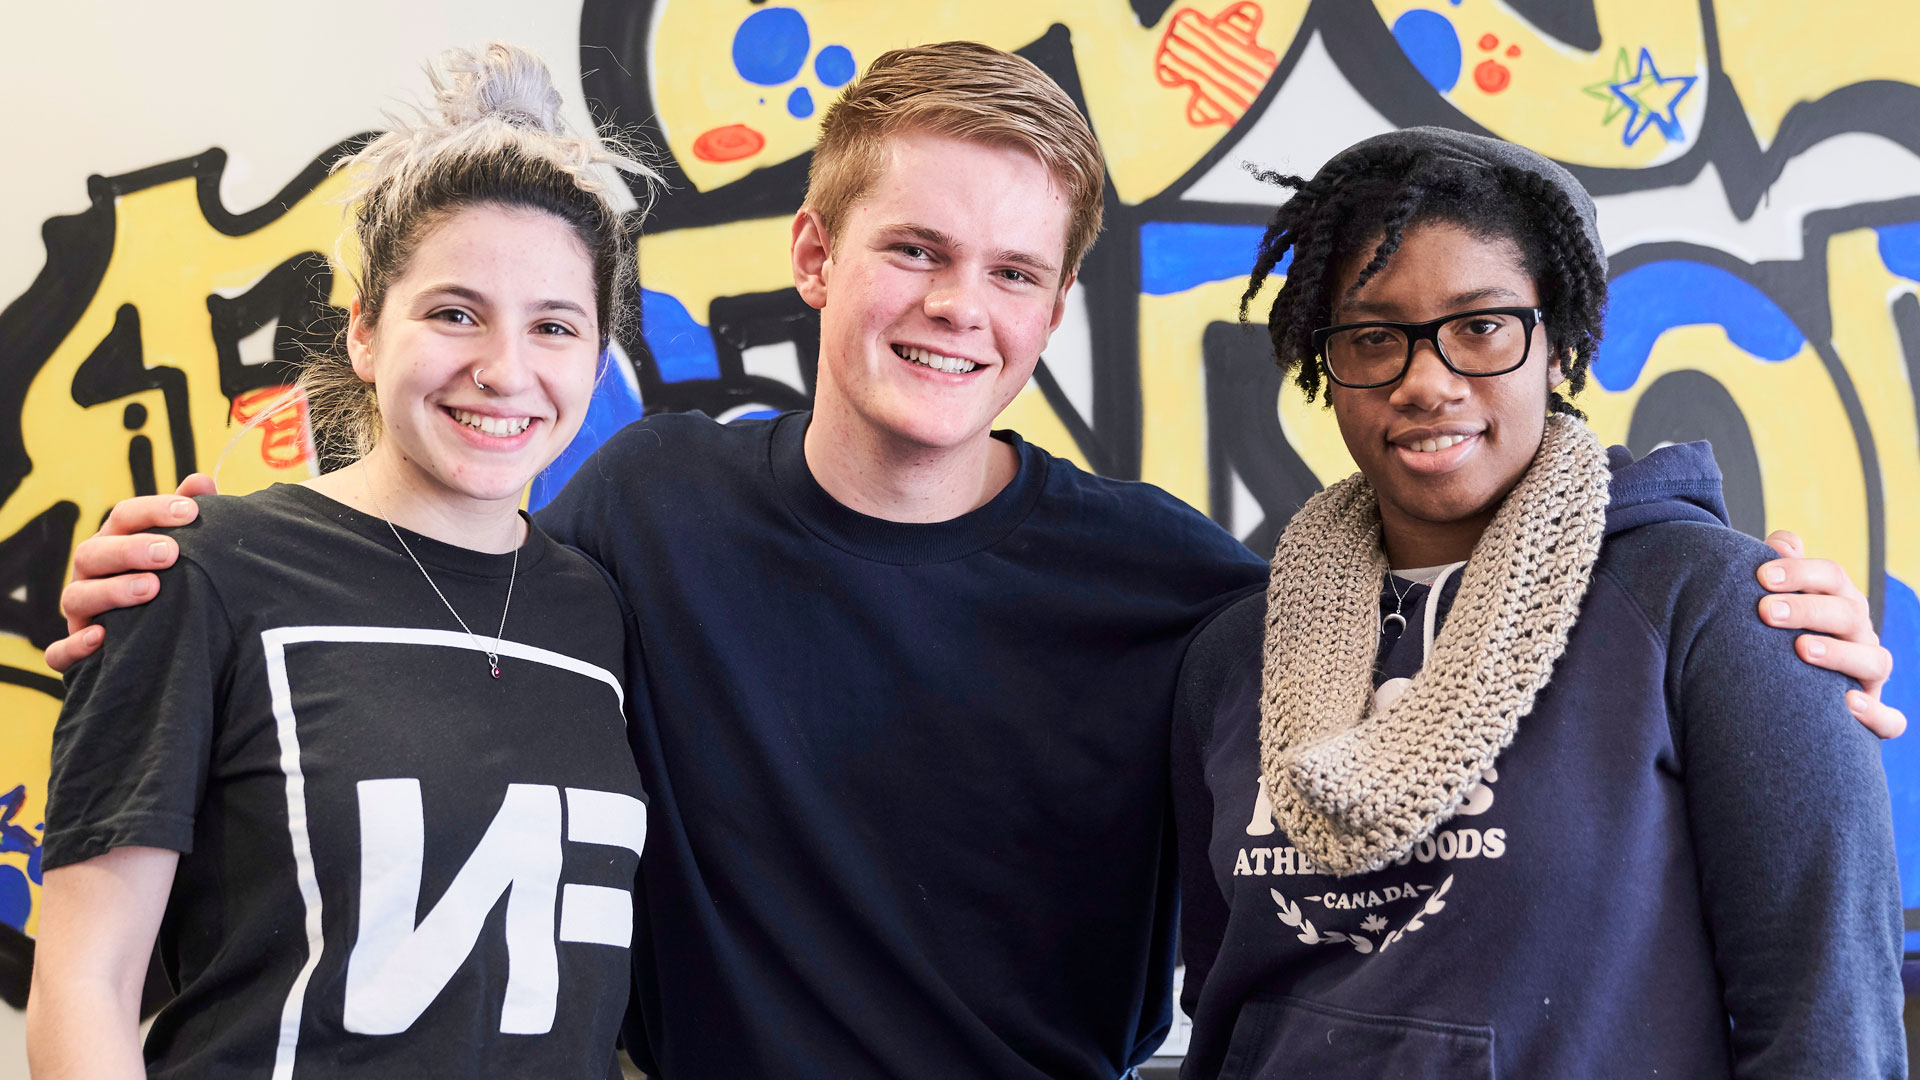 Three students in front of a mural